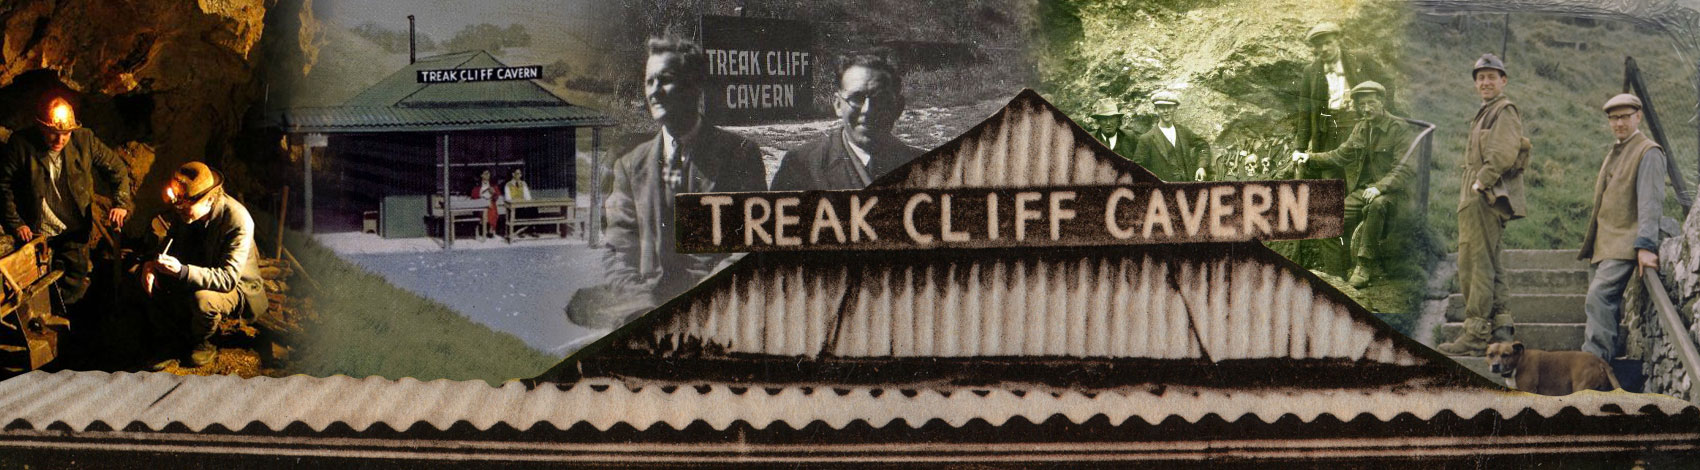 Treak Cliff Cavern history montage